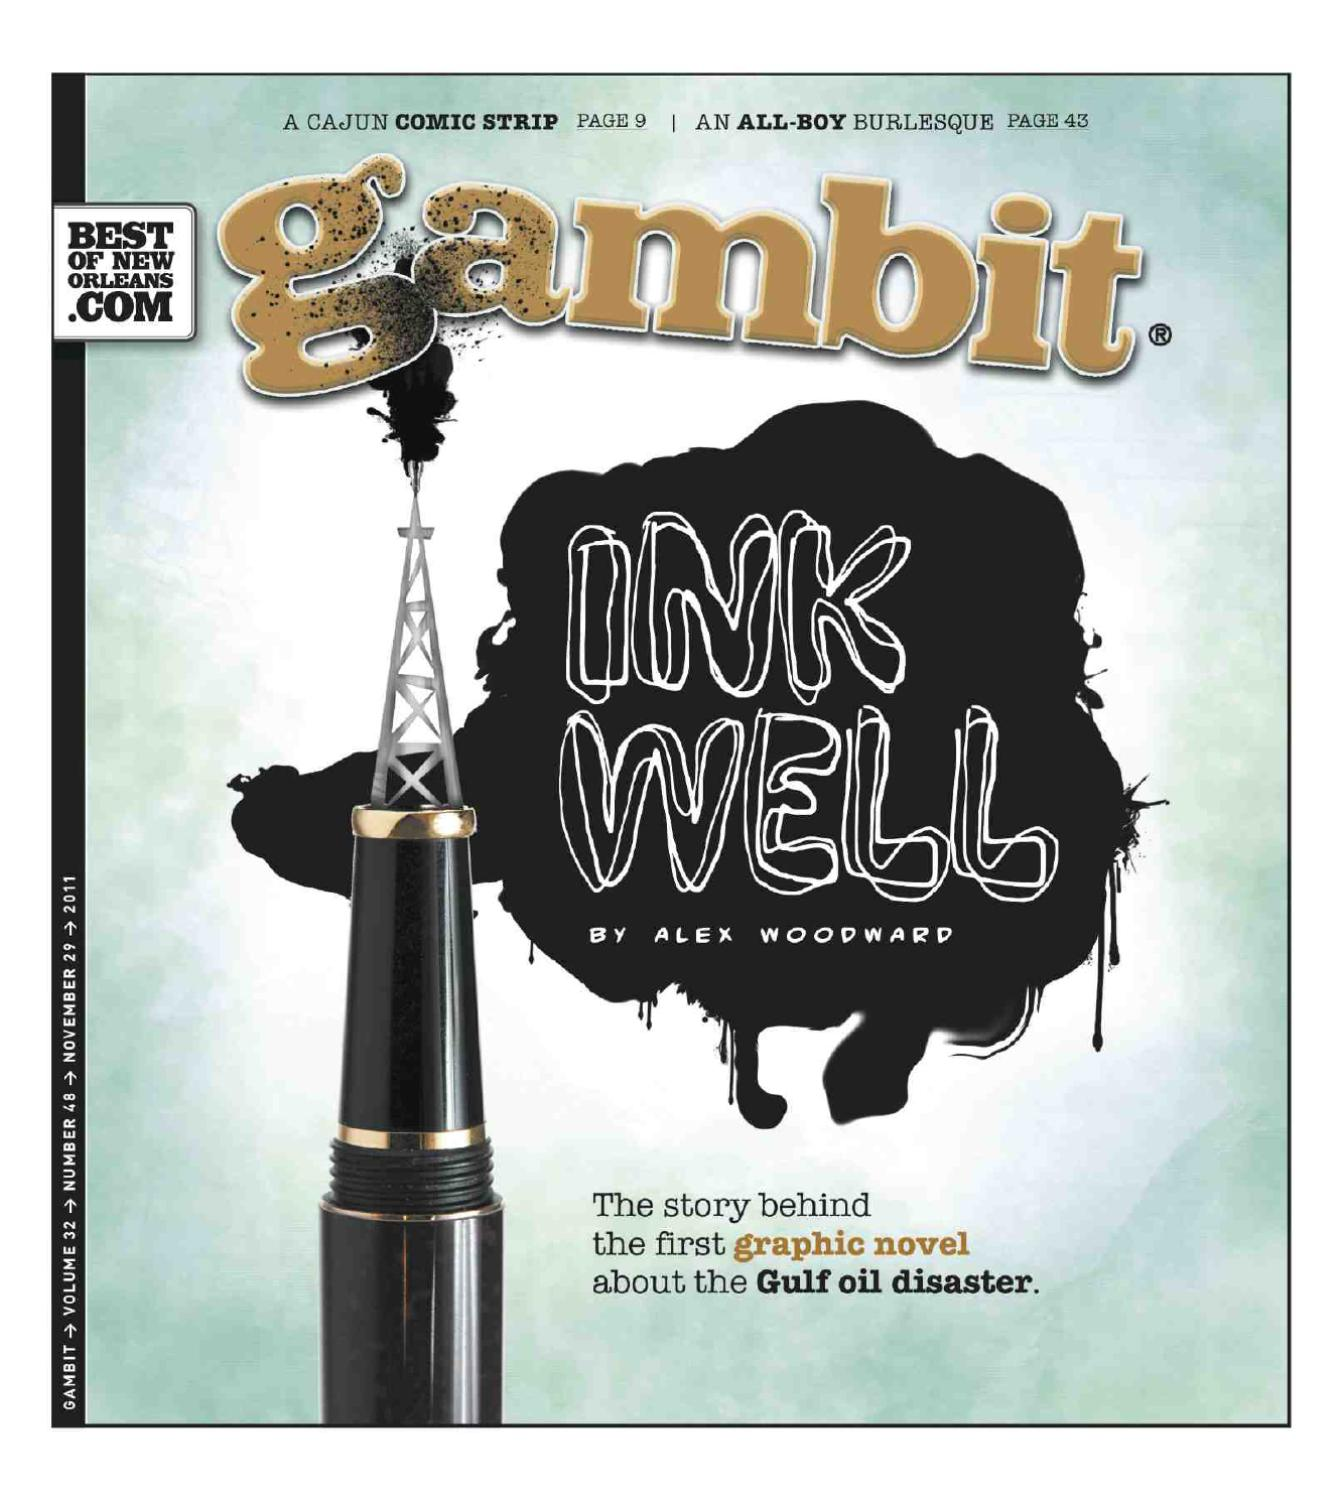 Gambit New Orleans Nov 29 2011 By Issuu Charles Jourdan 1005 2312 Silver